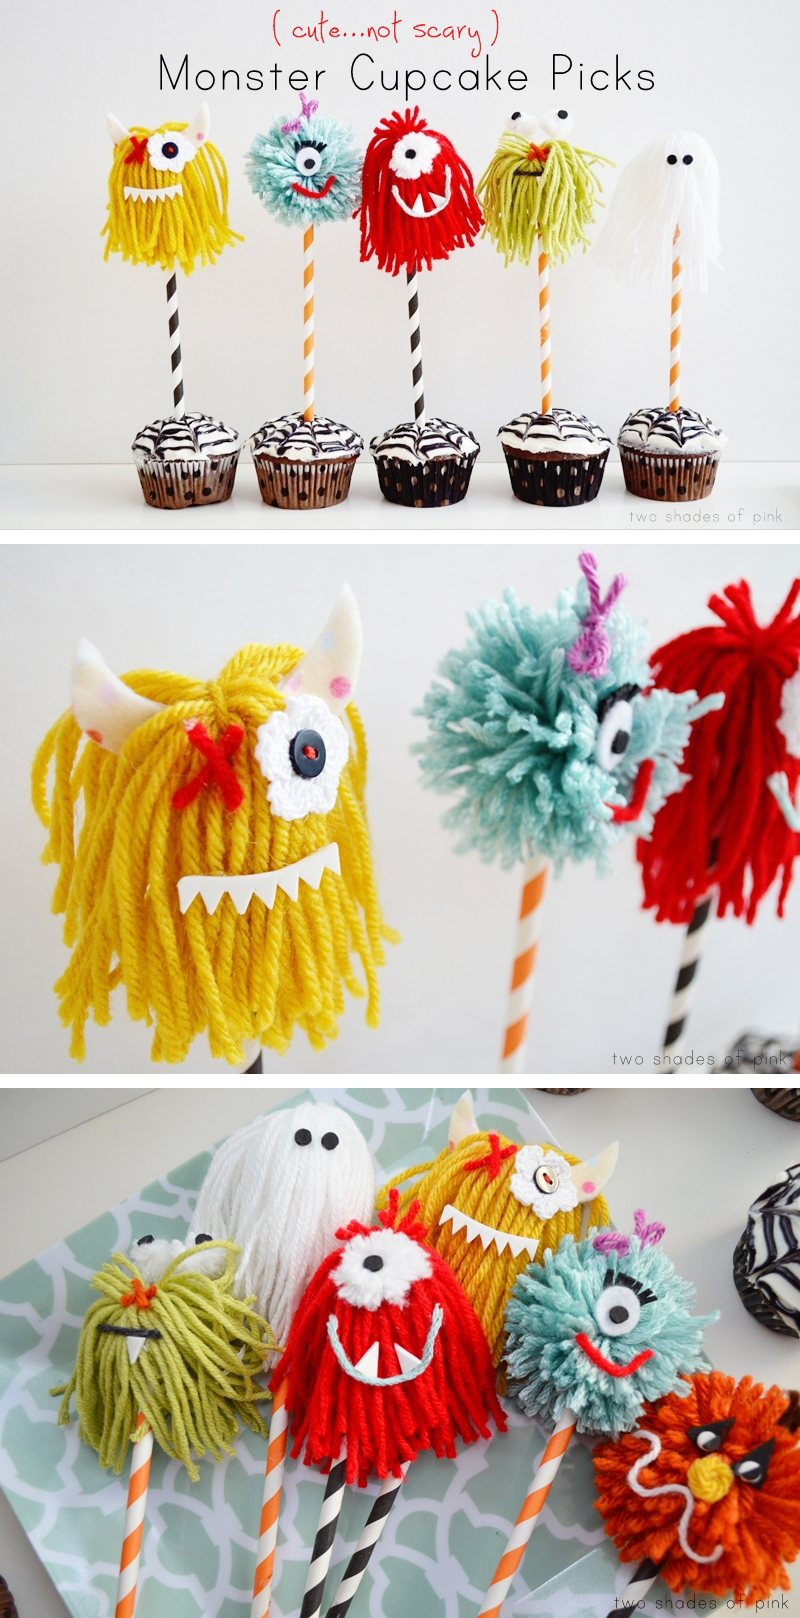 Cheering for Monster Cupcakes